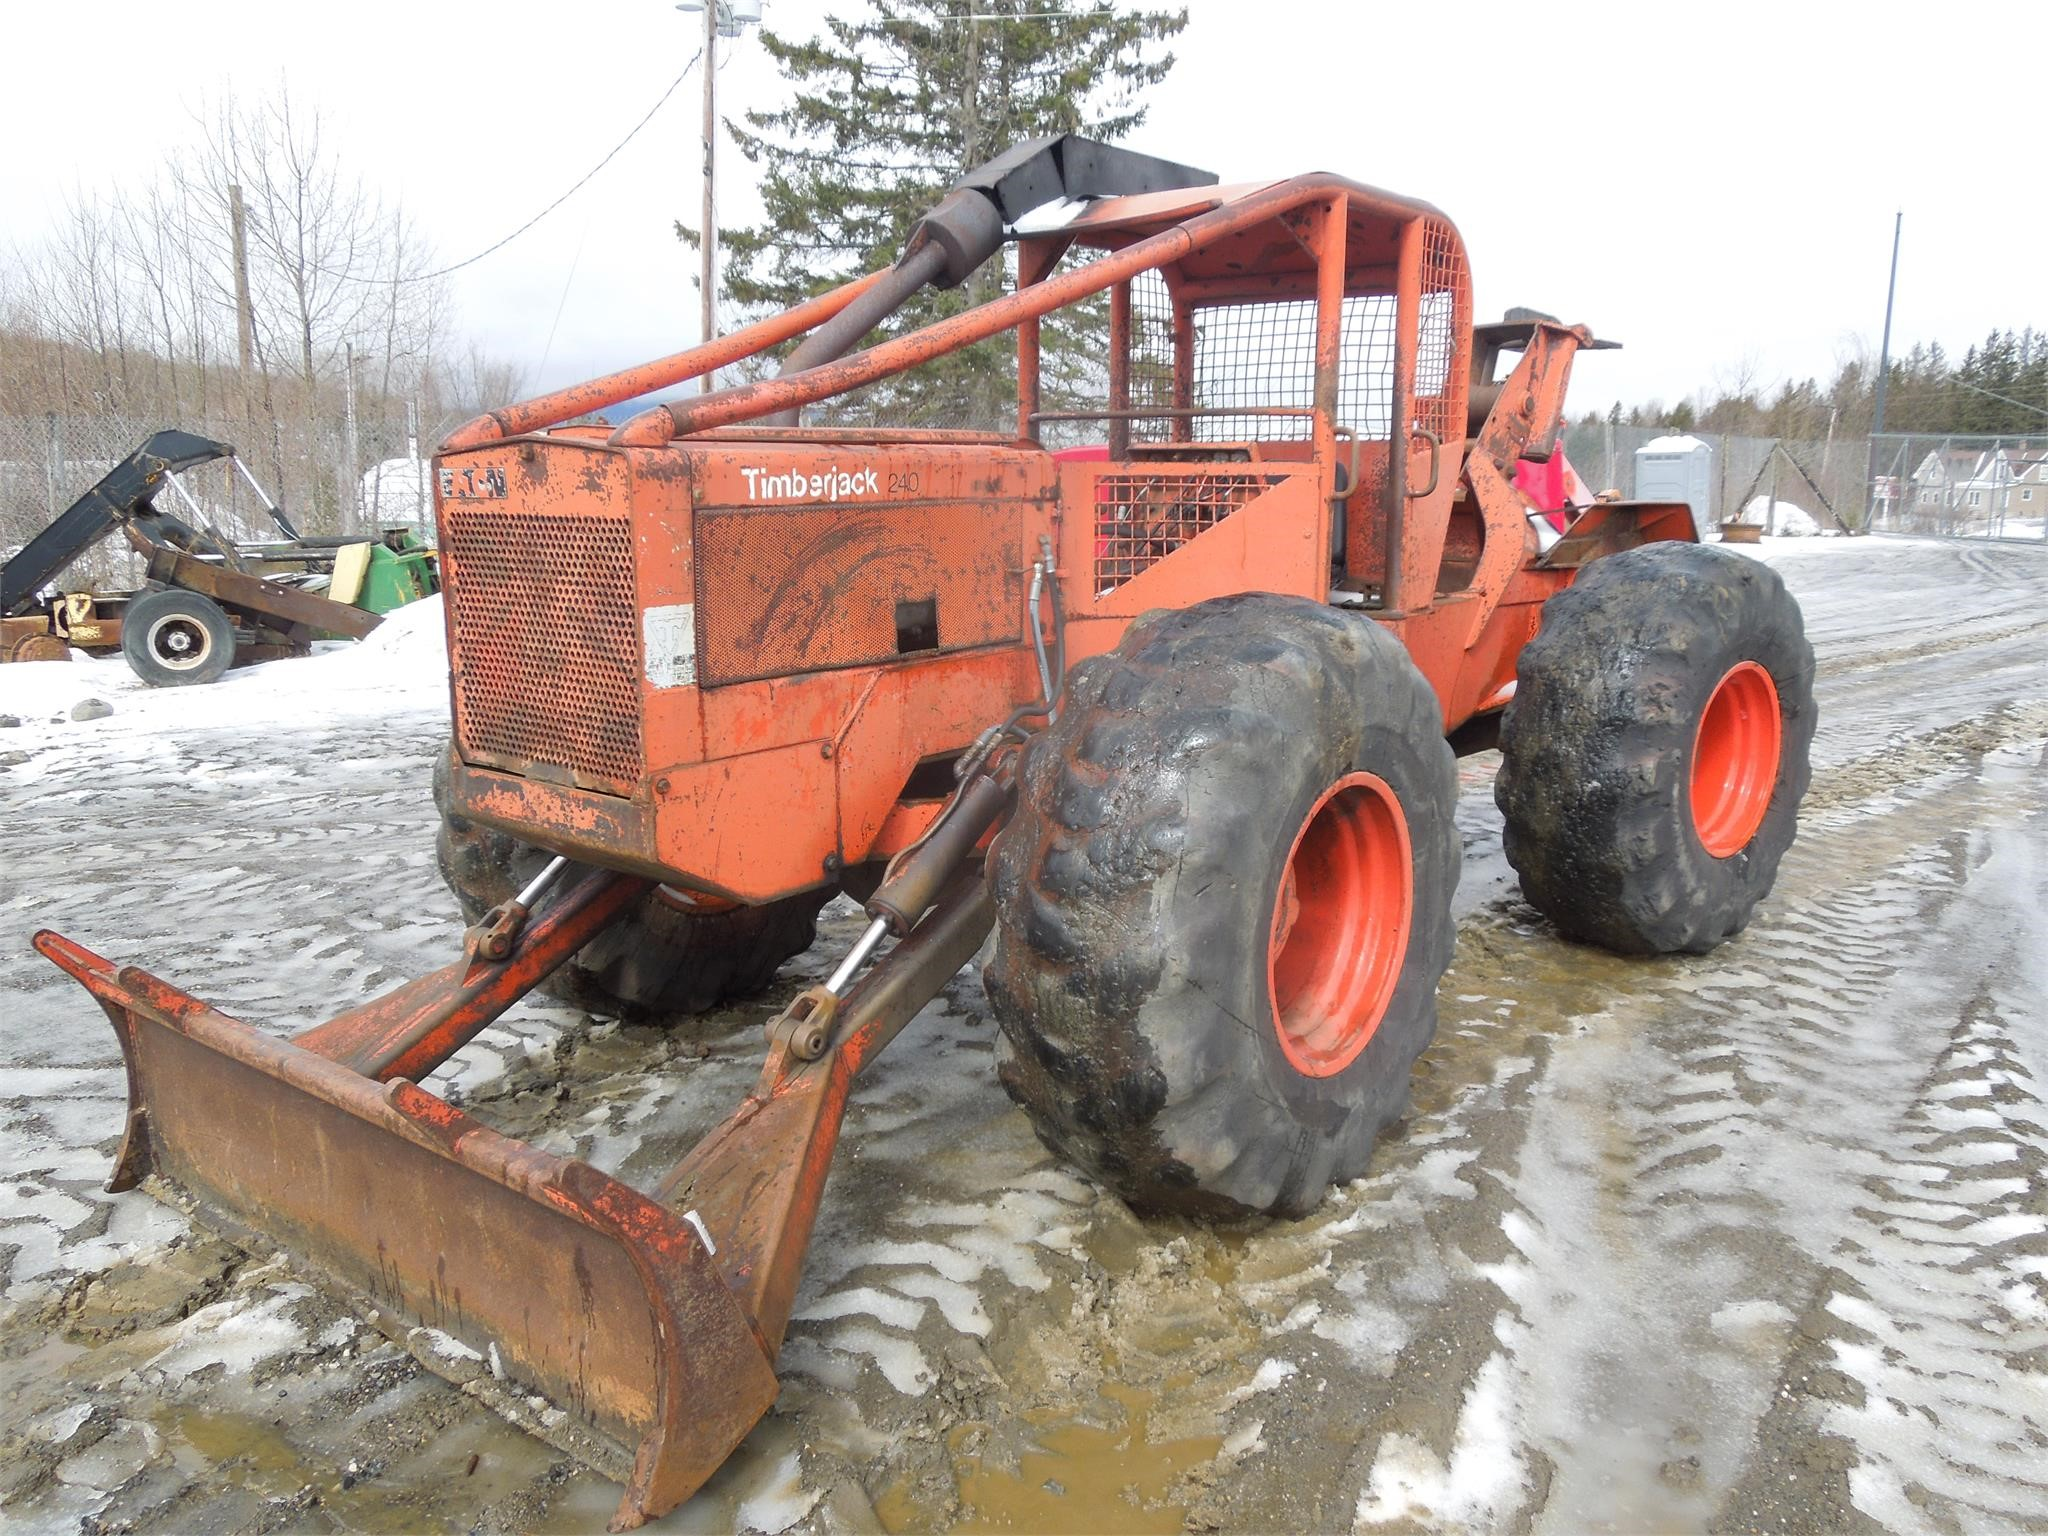 1979 TIMBERJACK 240 For Sale in Colebrook, New Hampshire